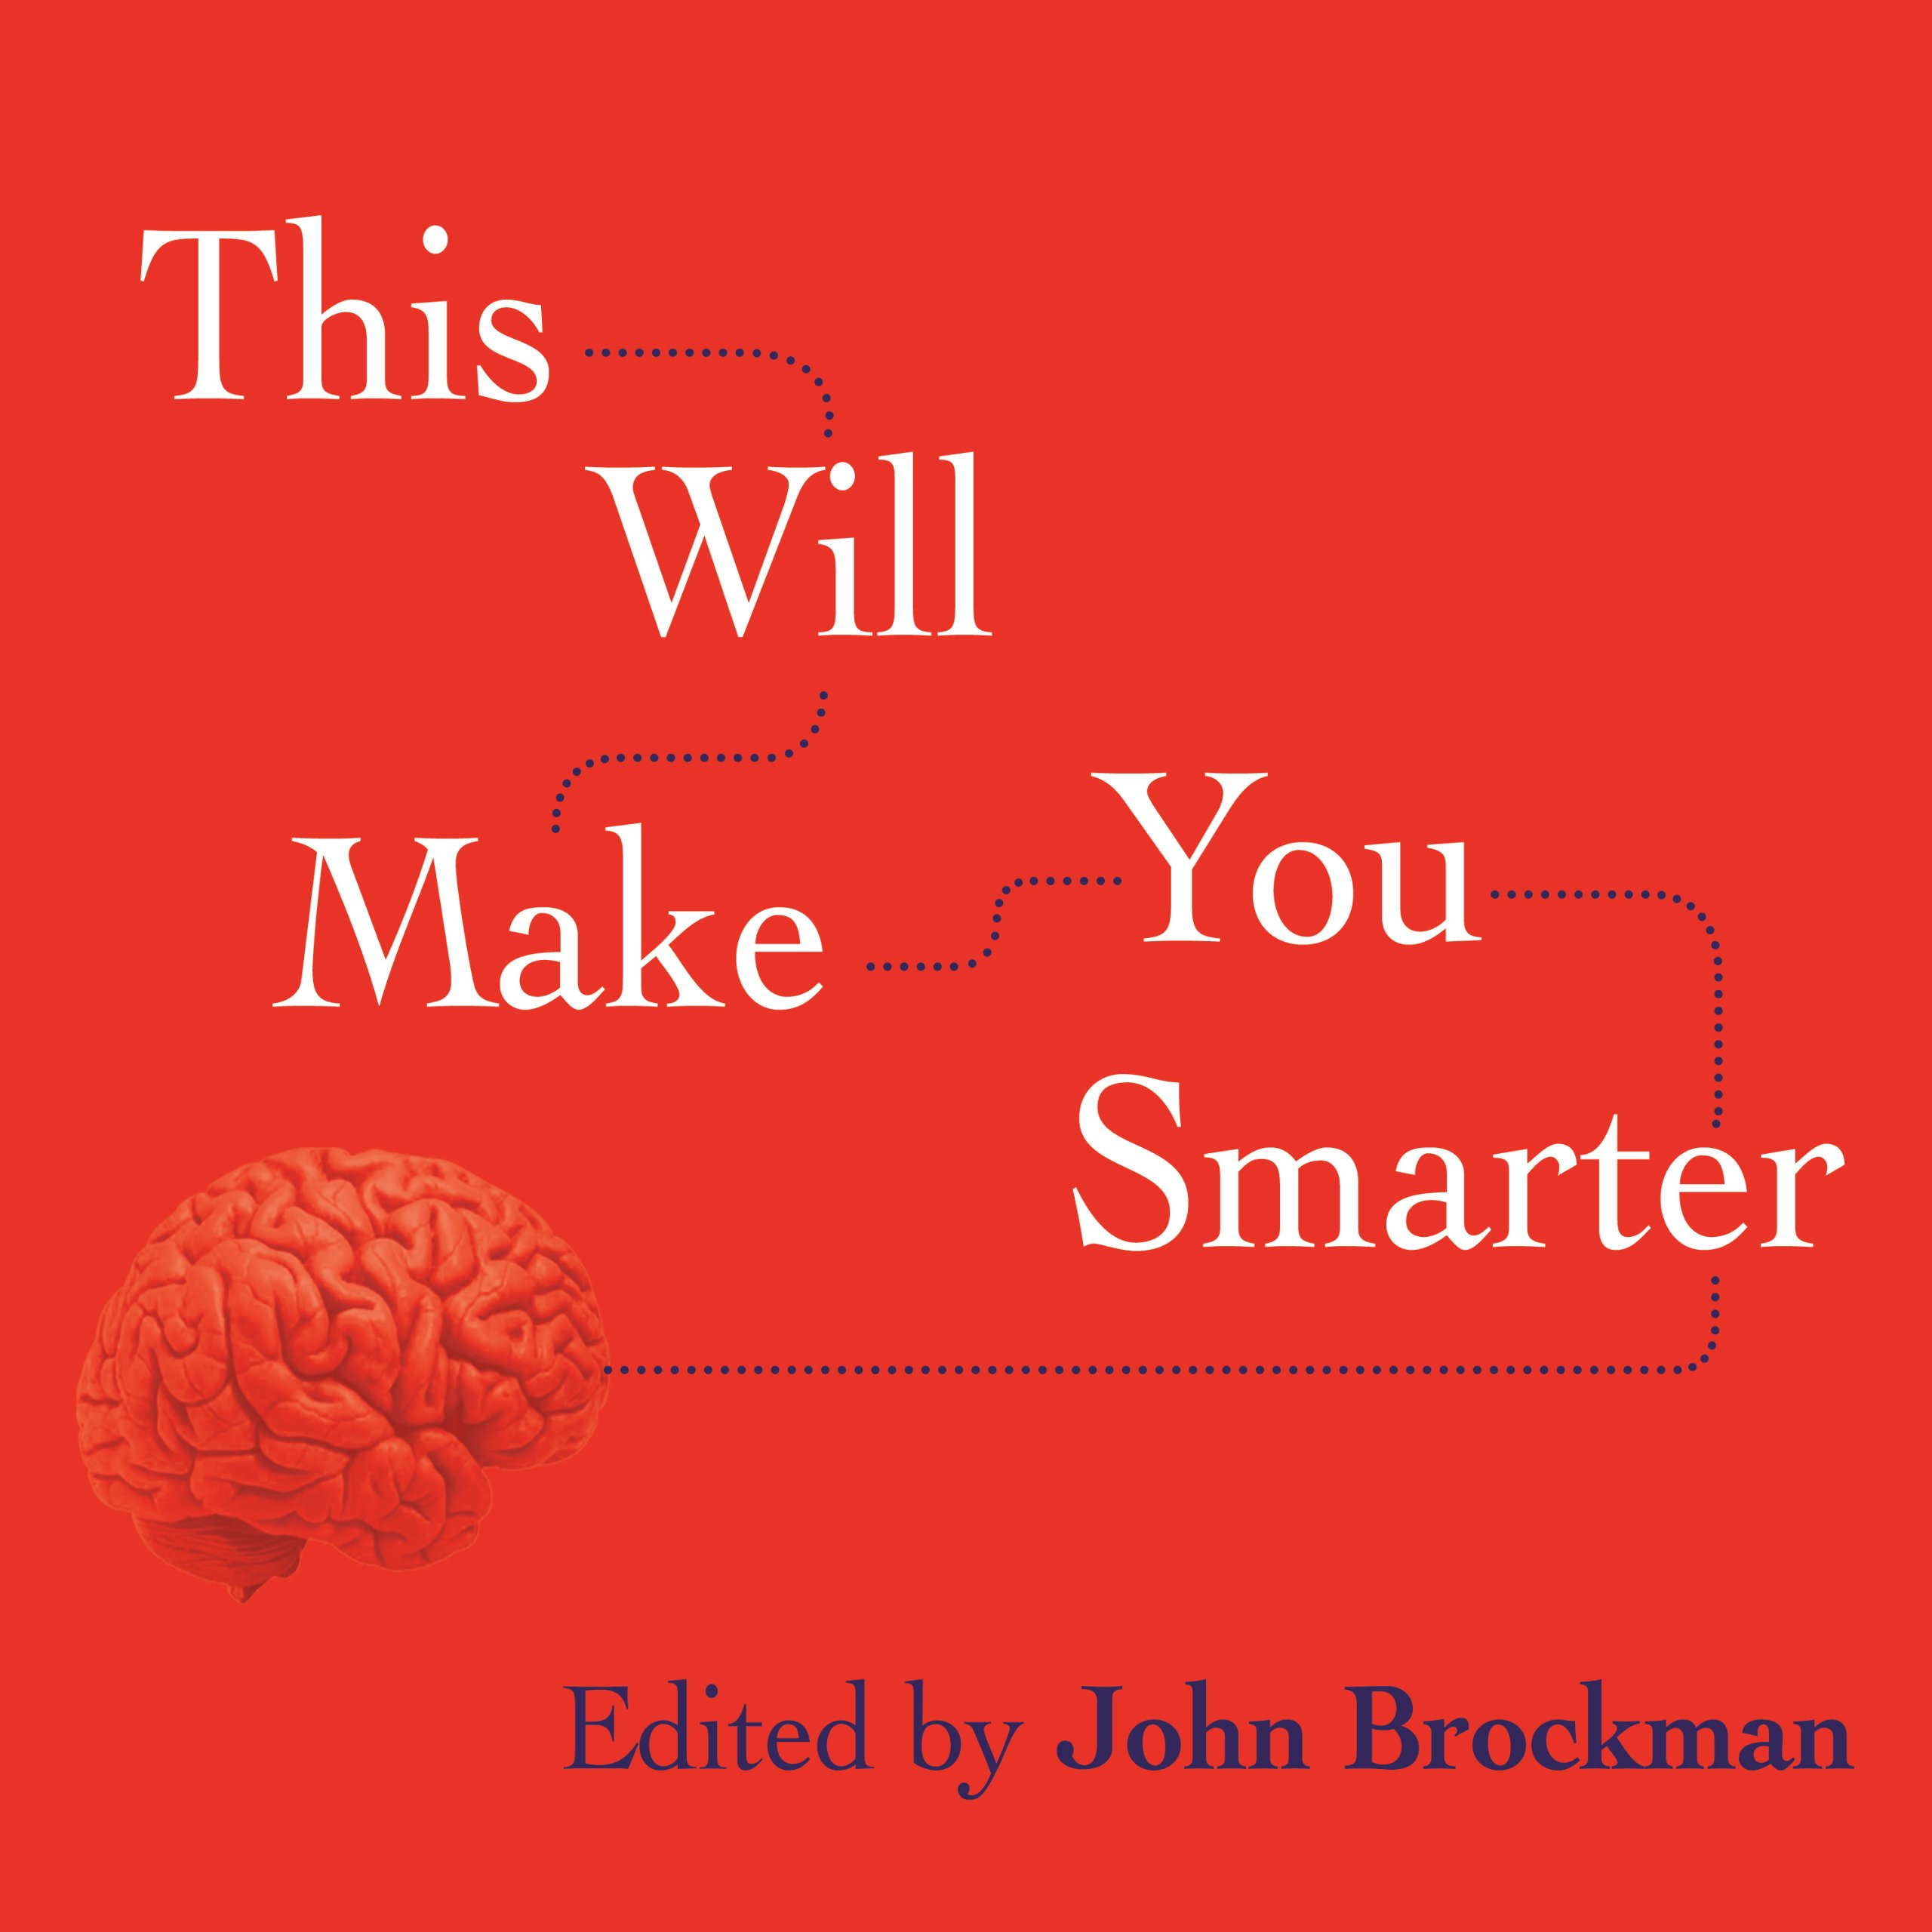 This Will Make You Smarter  New Scientific Concepts To Improve Your Thinking